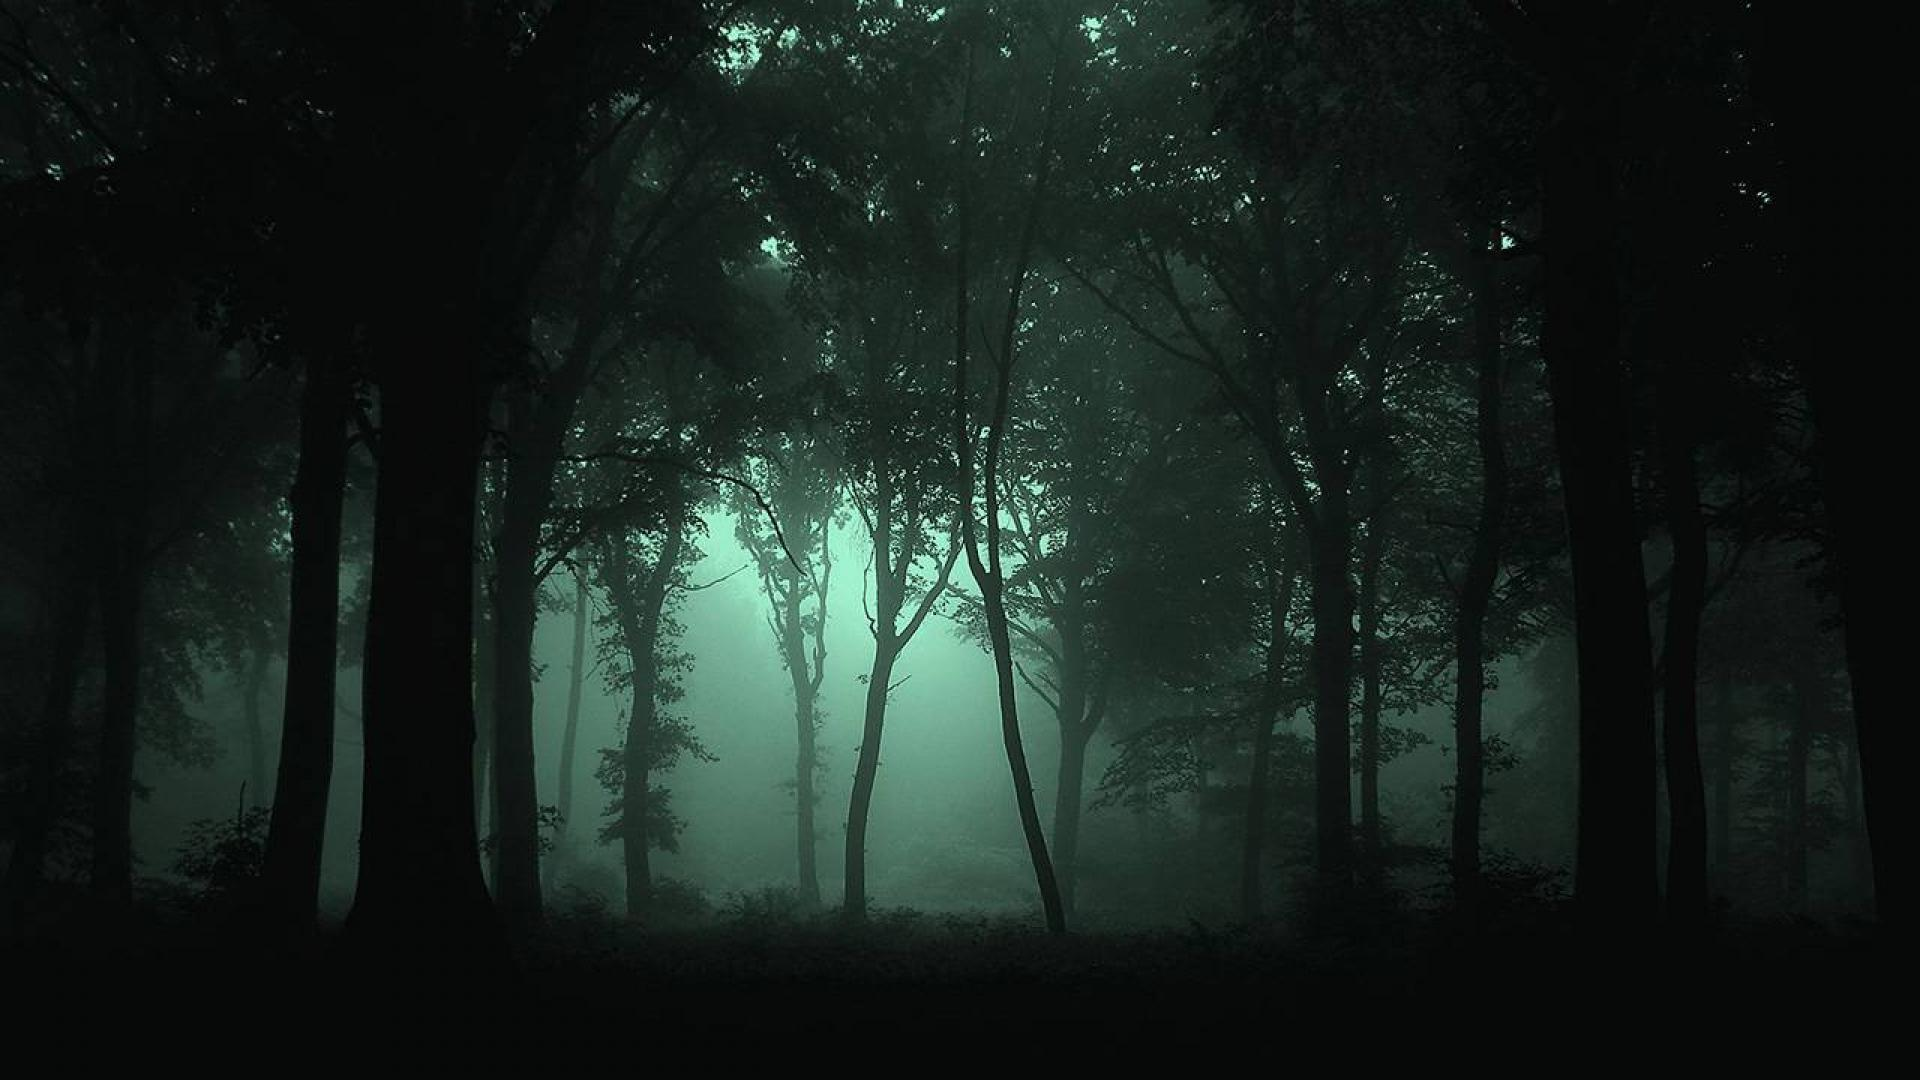 Hd wallpaper high resolution - Dark Forest Wallpapers High Resolution Background 1 Hd Wallpapers